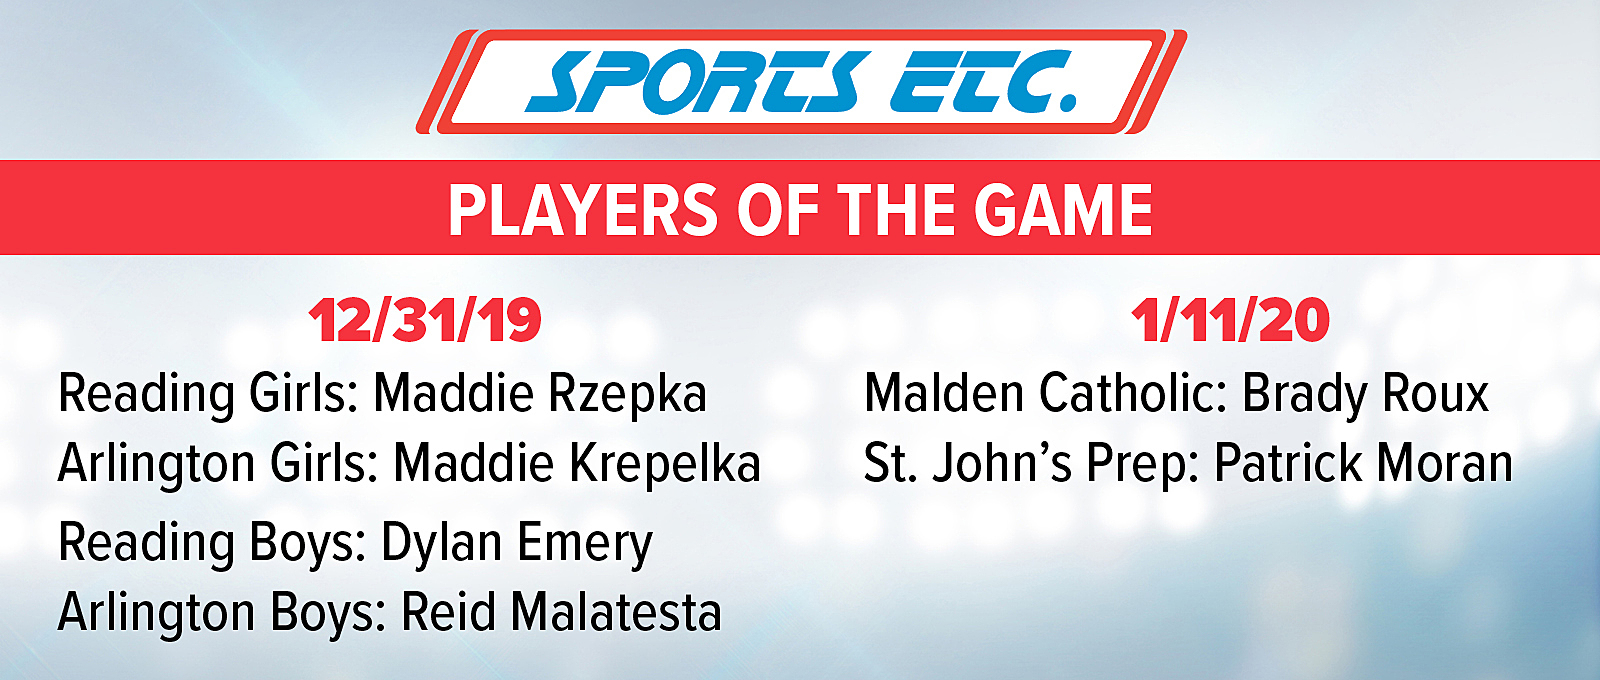 Sports Etc Player of The Game Program